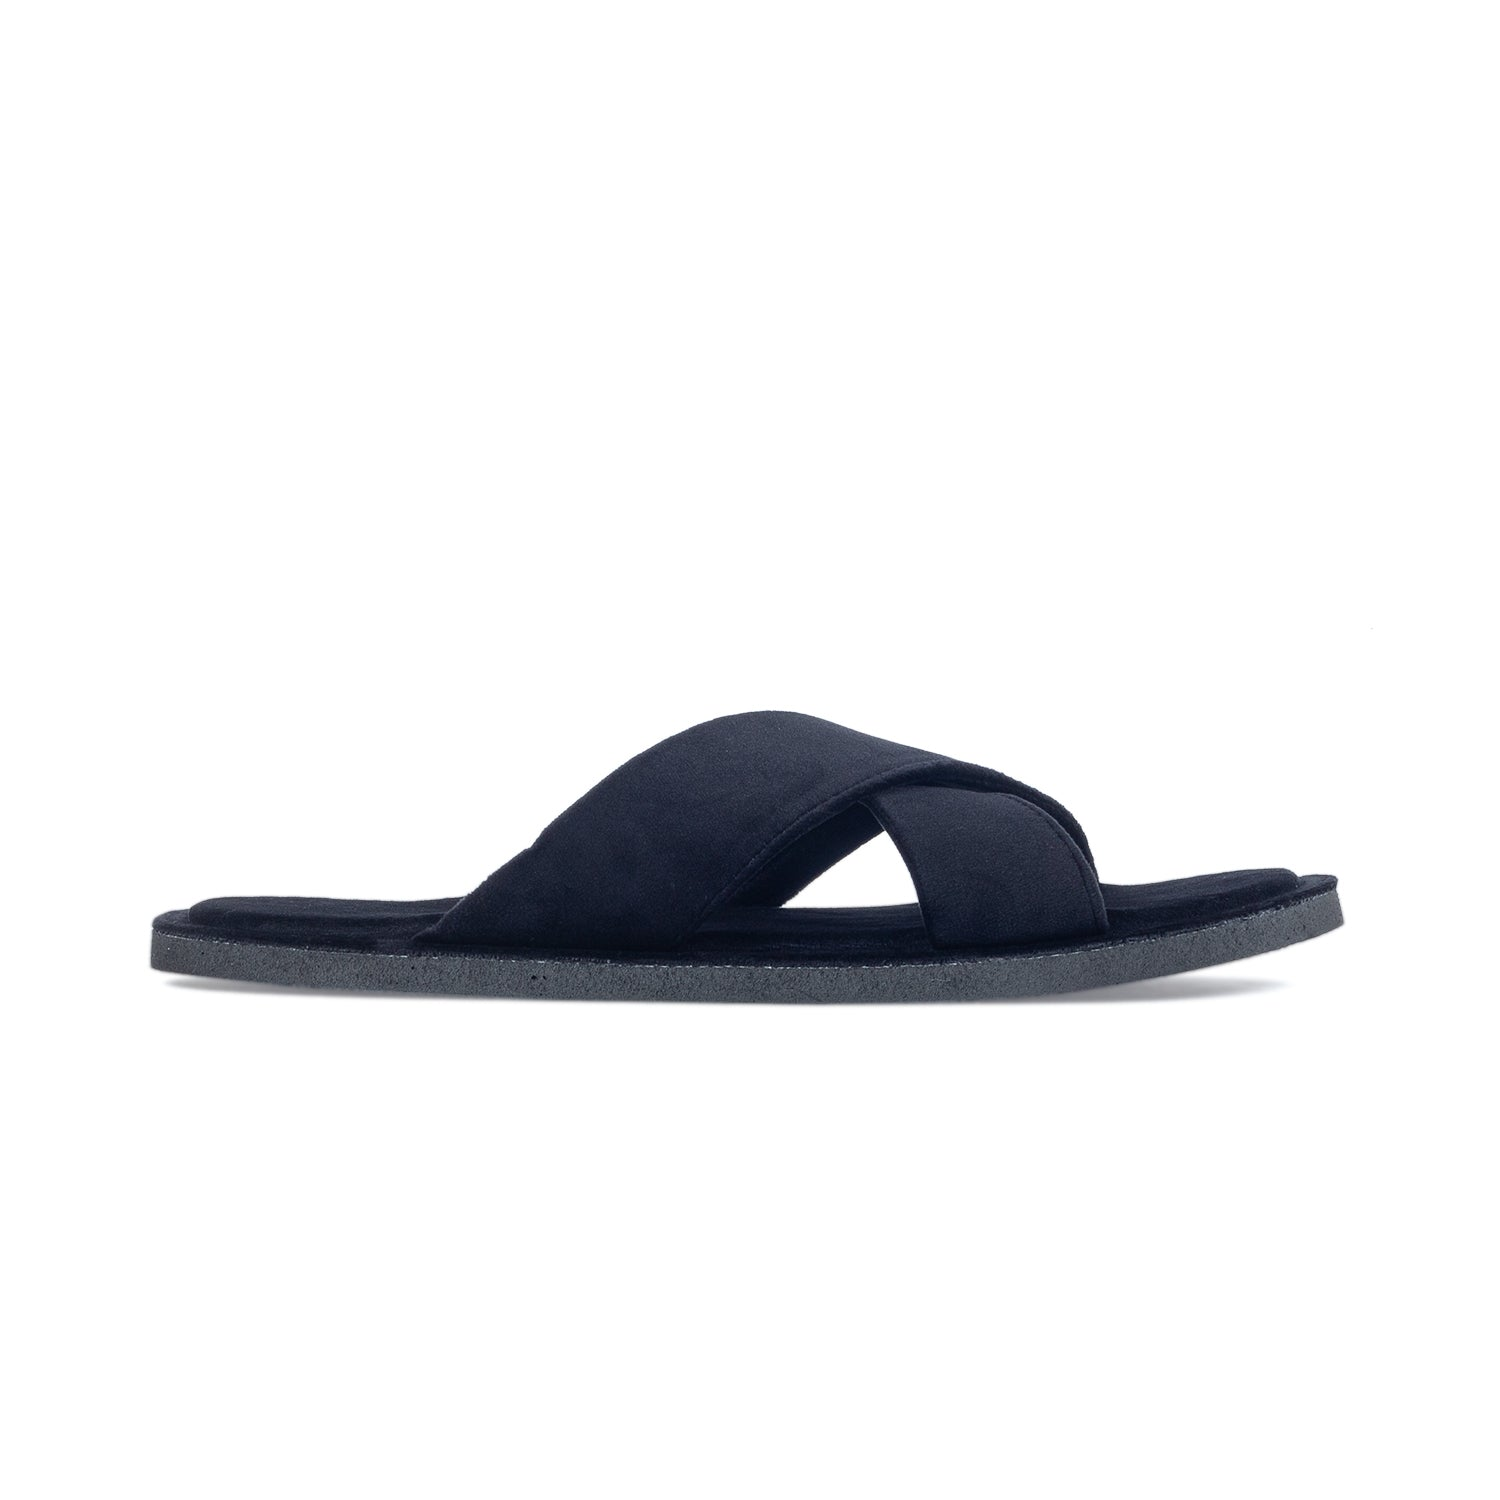 Kids New Roman Domani Slippers© (Black)